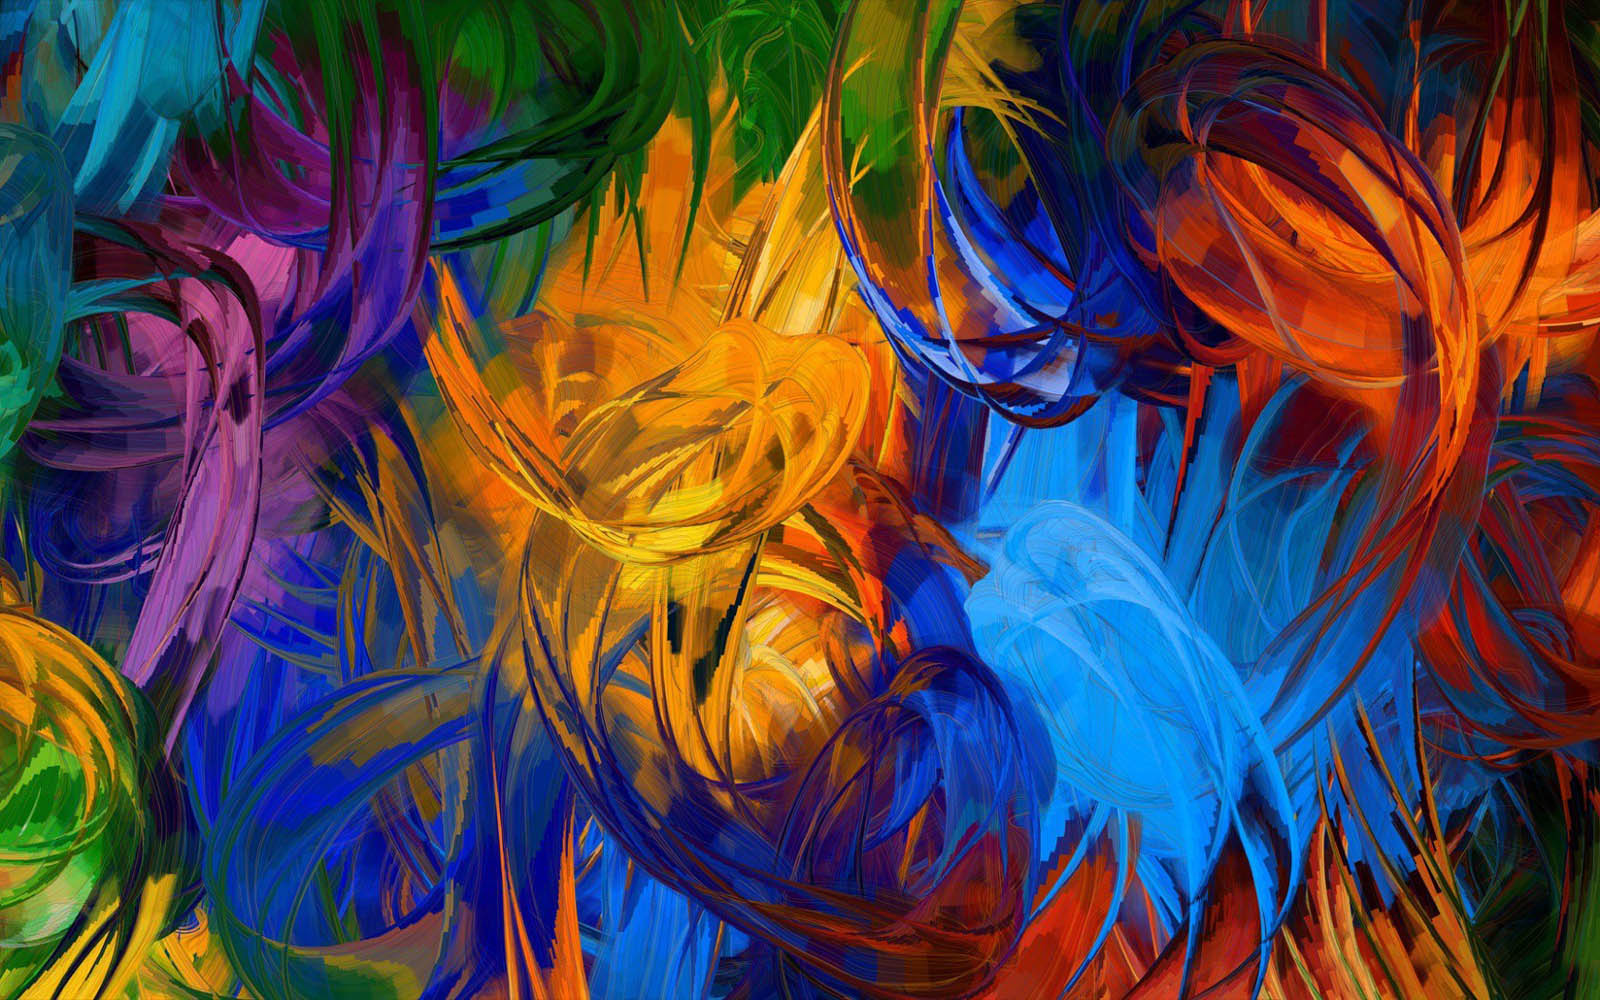 Wallpapers abstract paintings wallpapers for Artworks for sale online